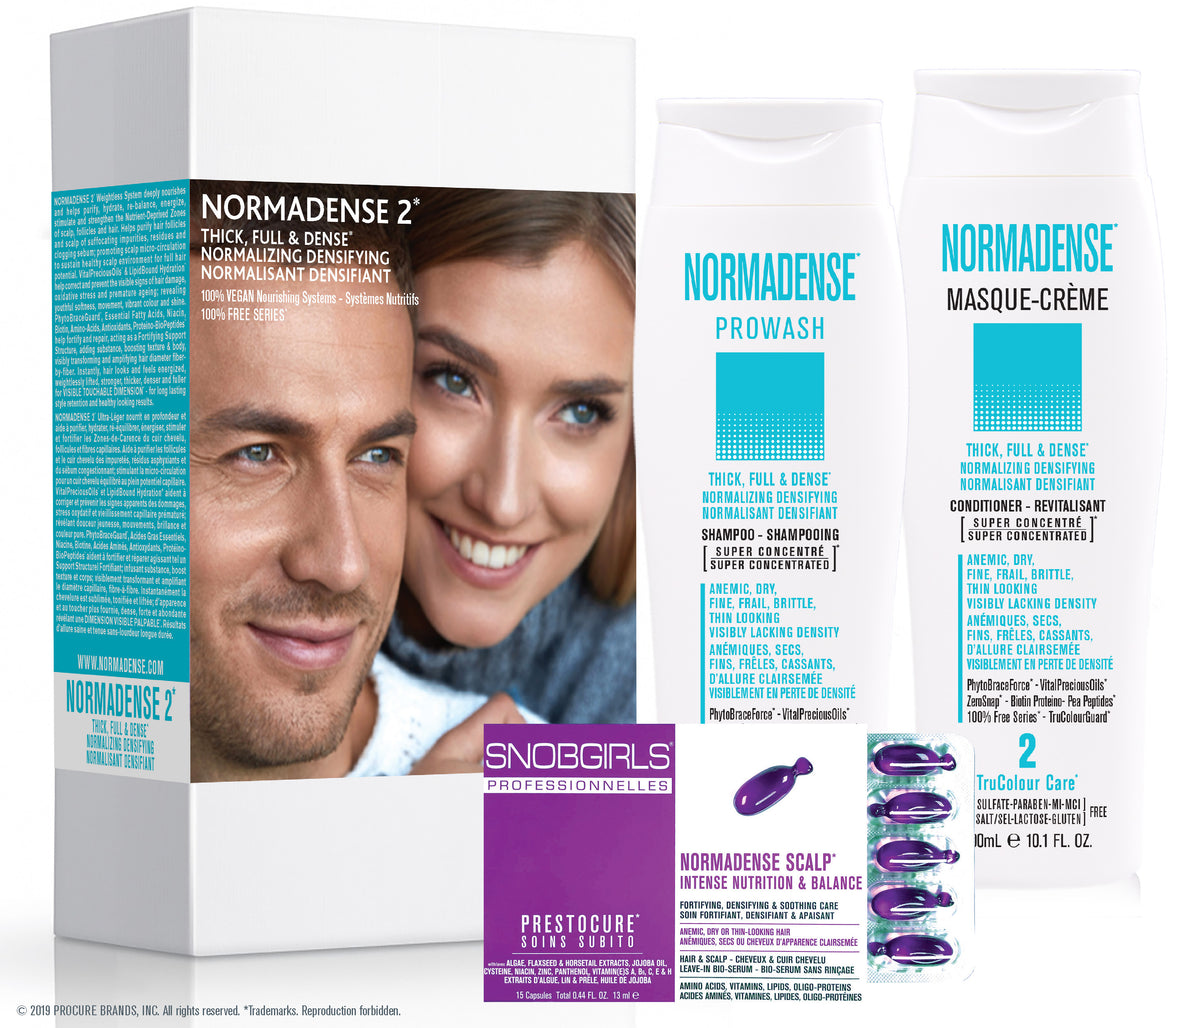 TRIO BOX NORMADENSE 2 THICK, FULL & DENSE  NORMALIZING DENSIFYING - SNOBGIRLS.com